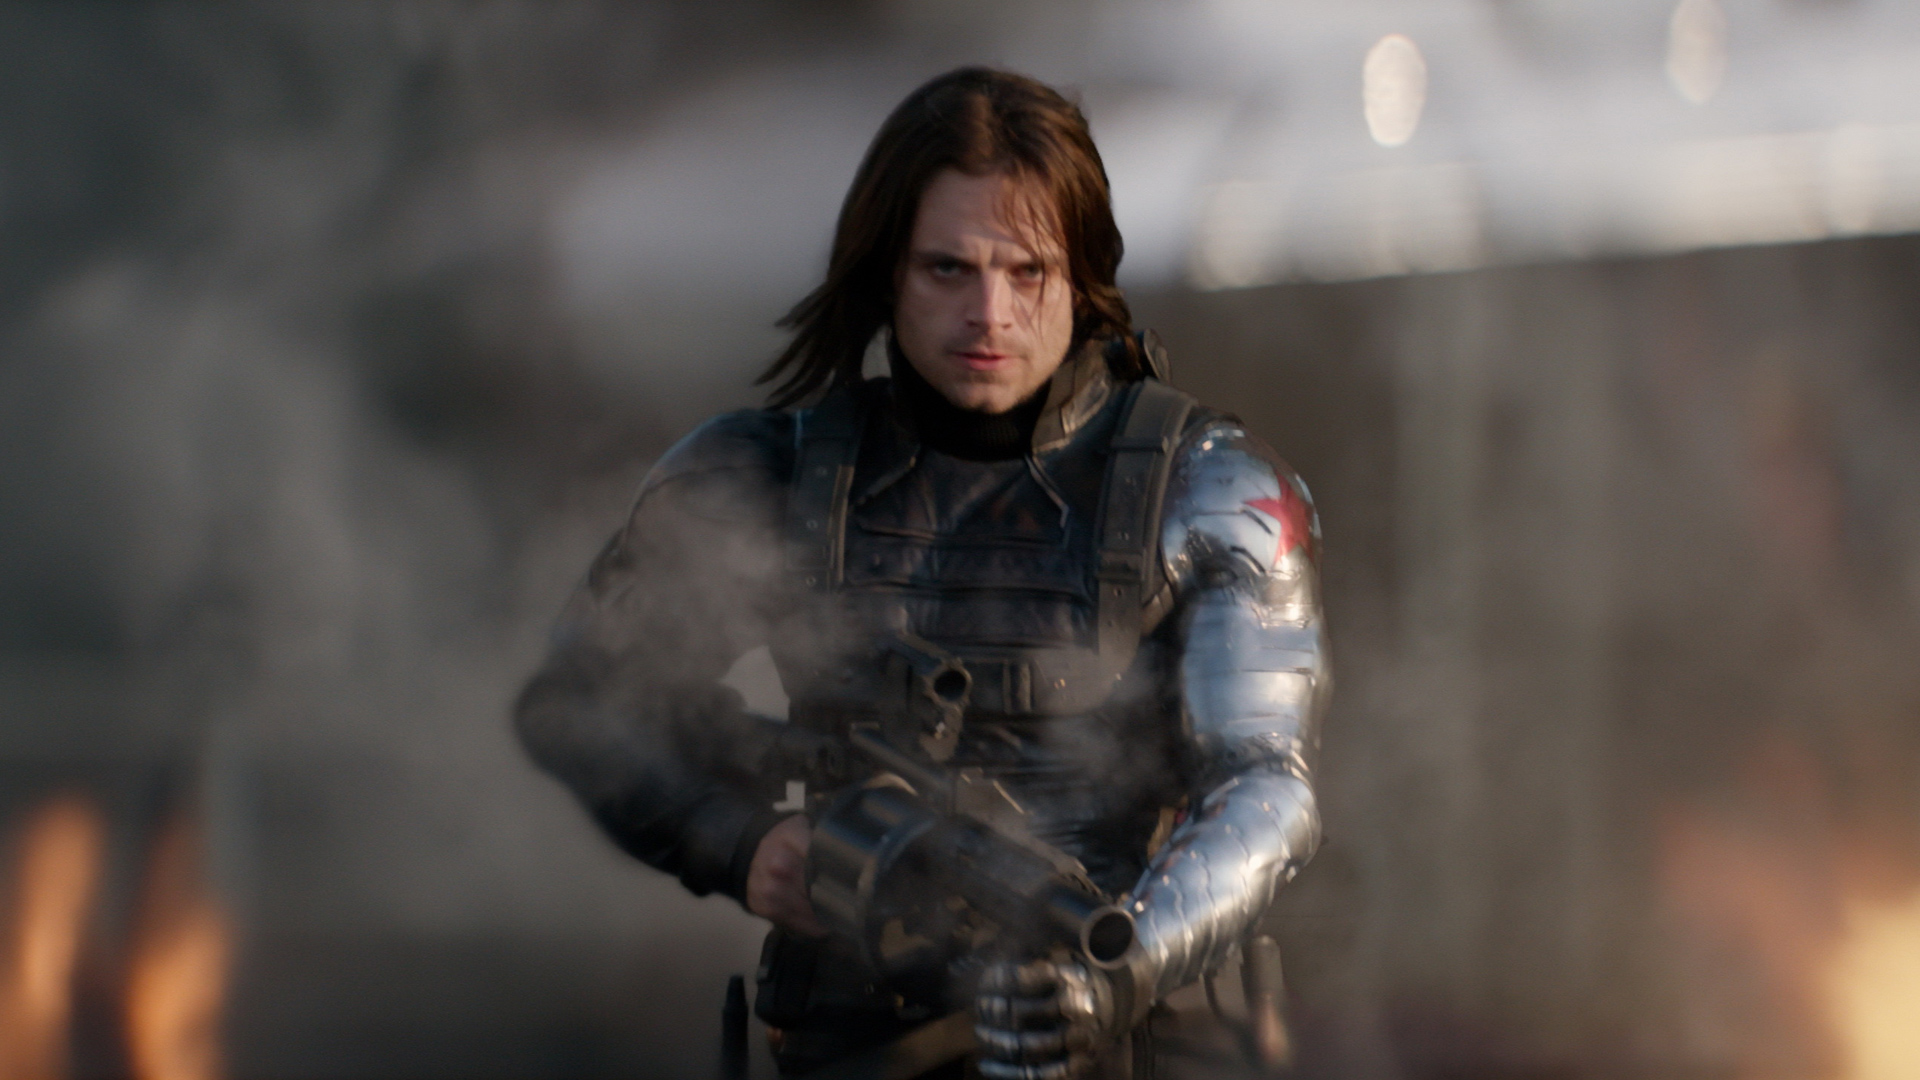 Nick Fury Captain America Winter Soldier Wallpapers For Mobile